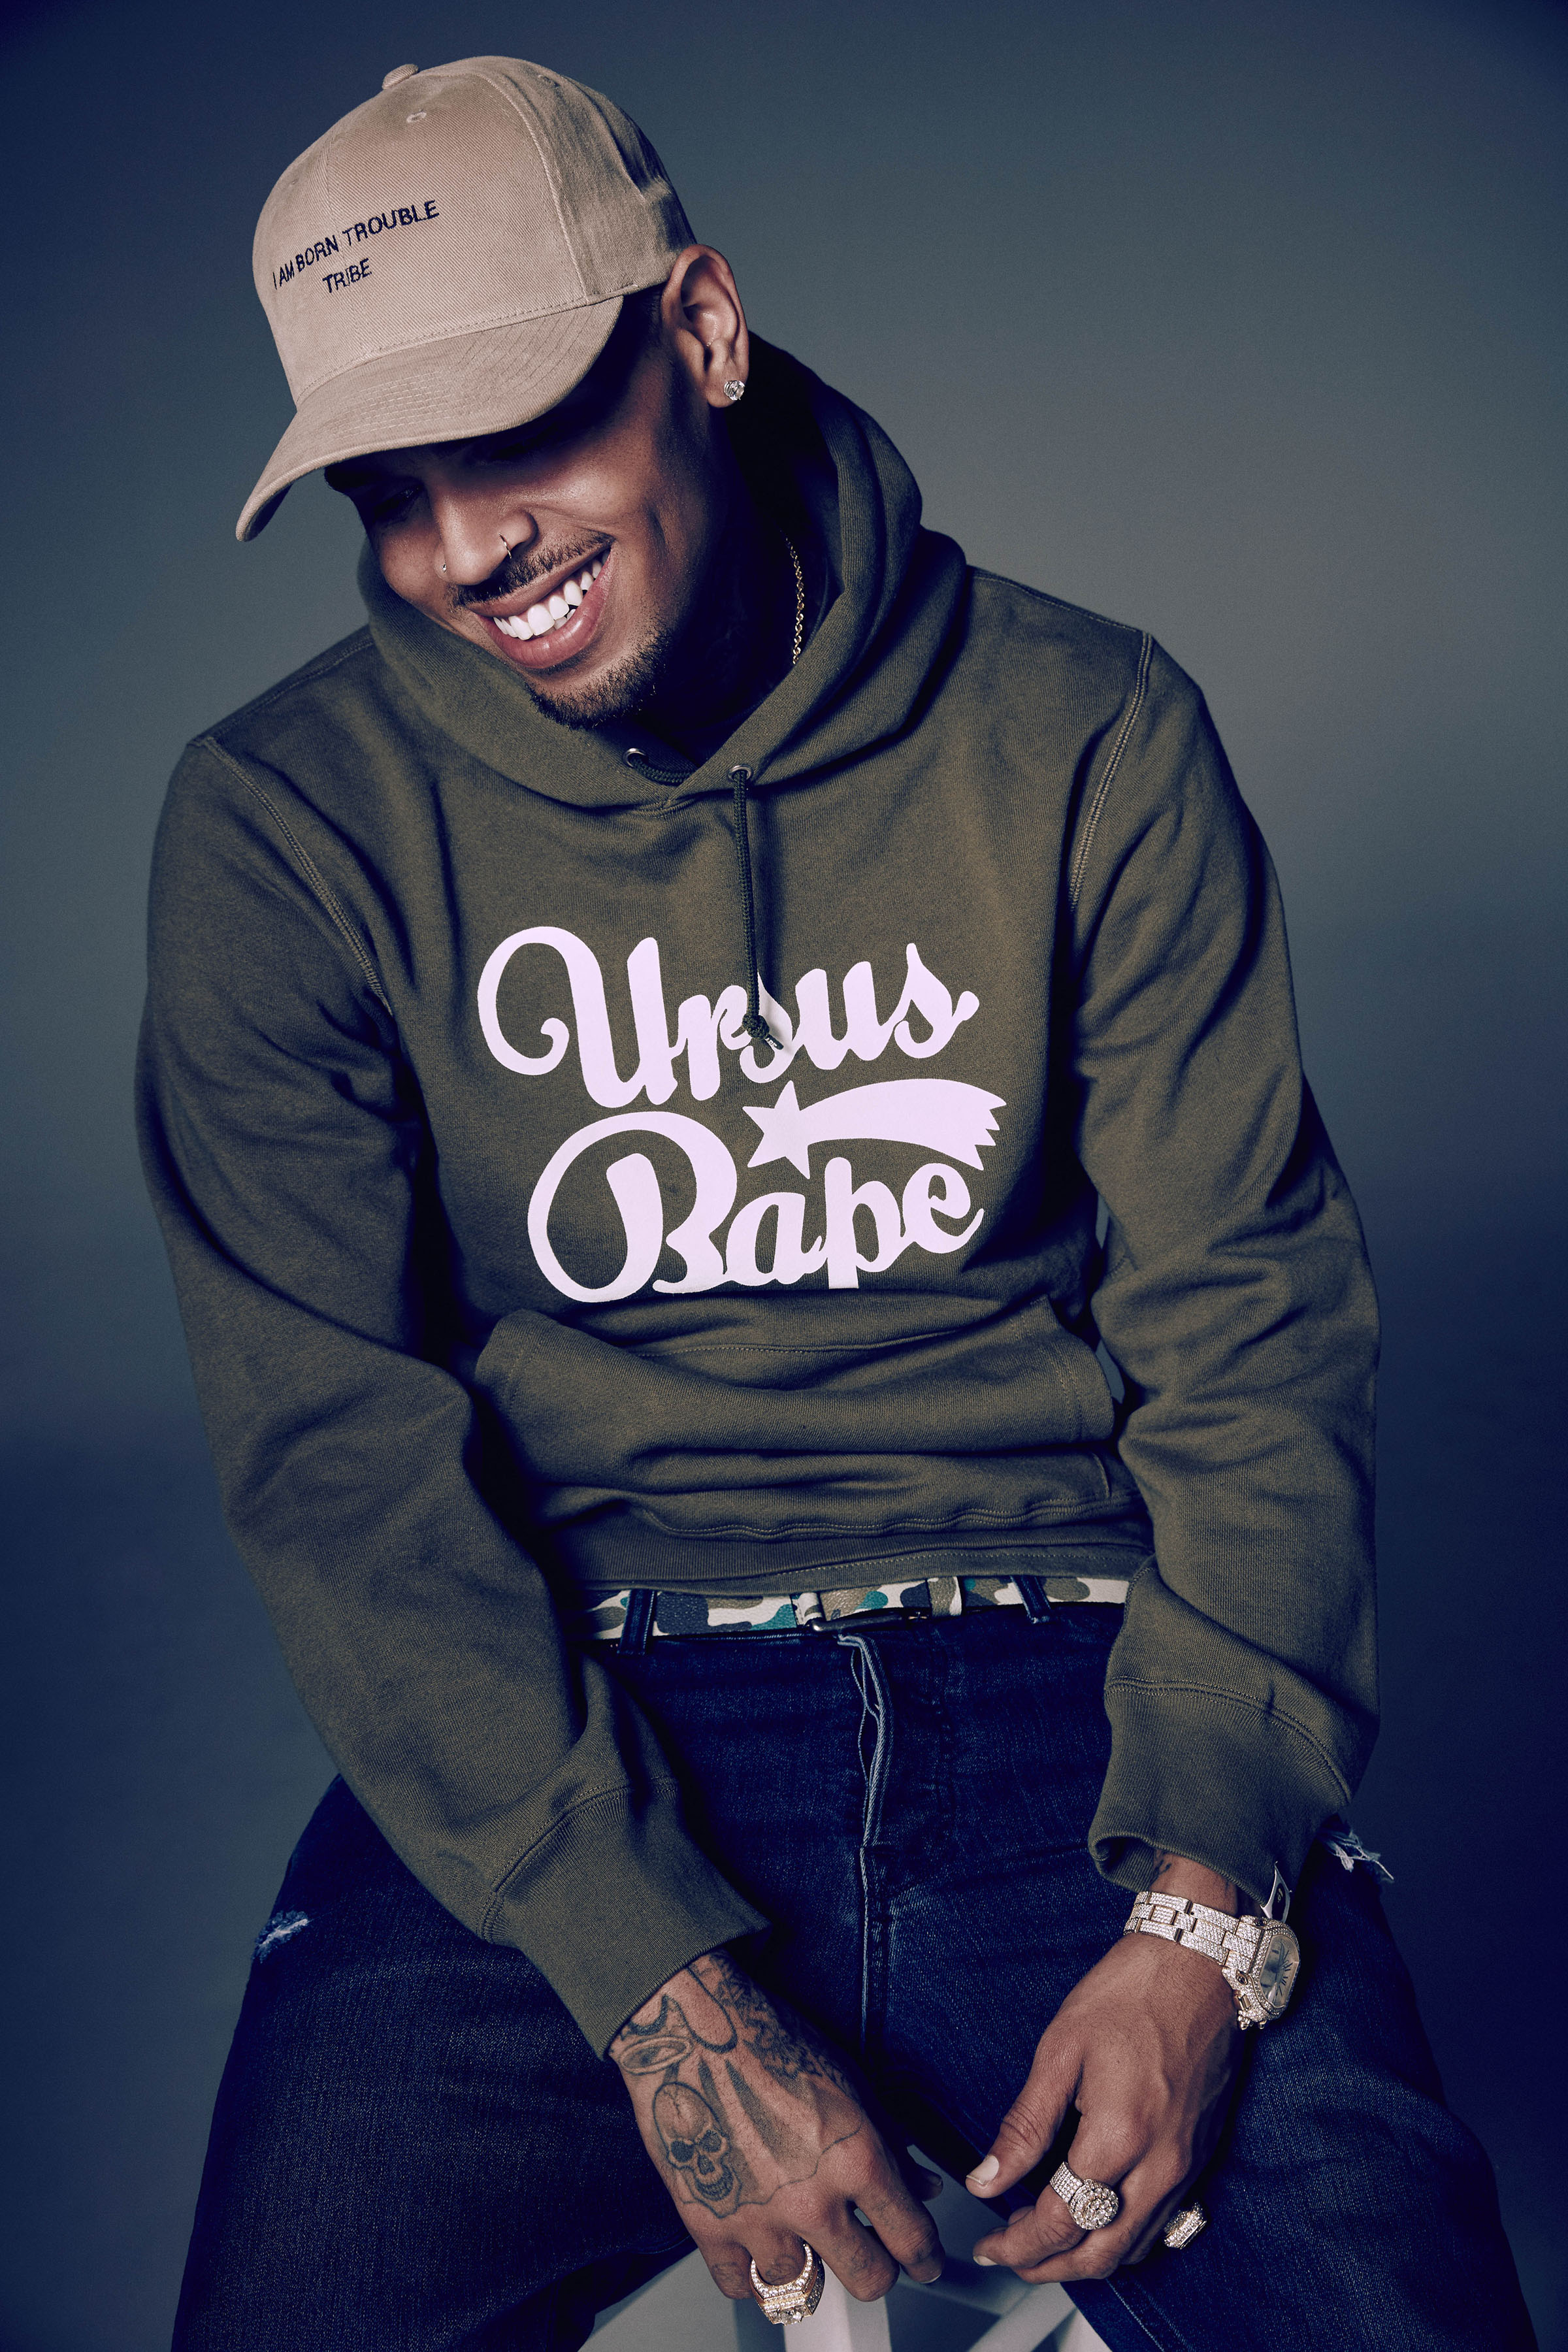 chris brown smiling tumblr - photo #33